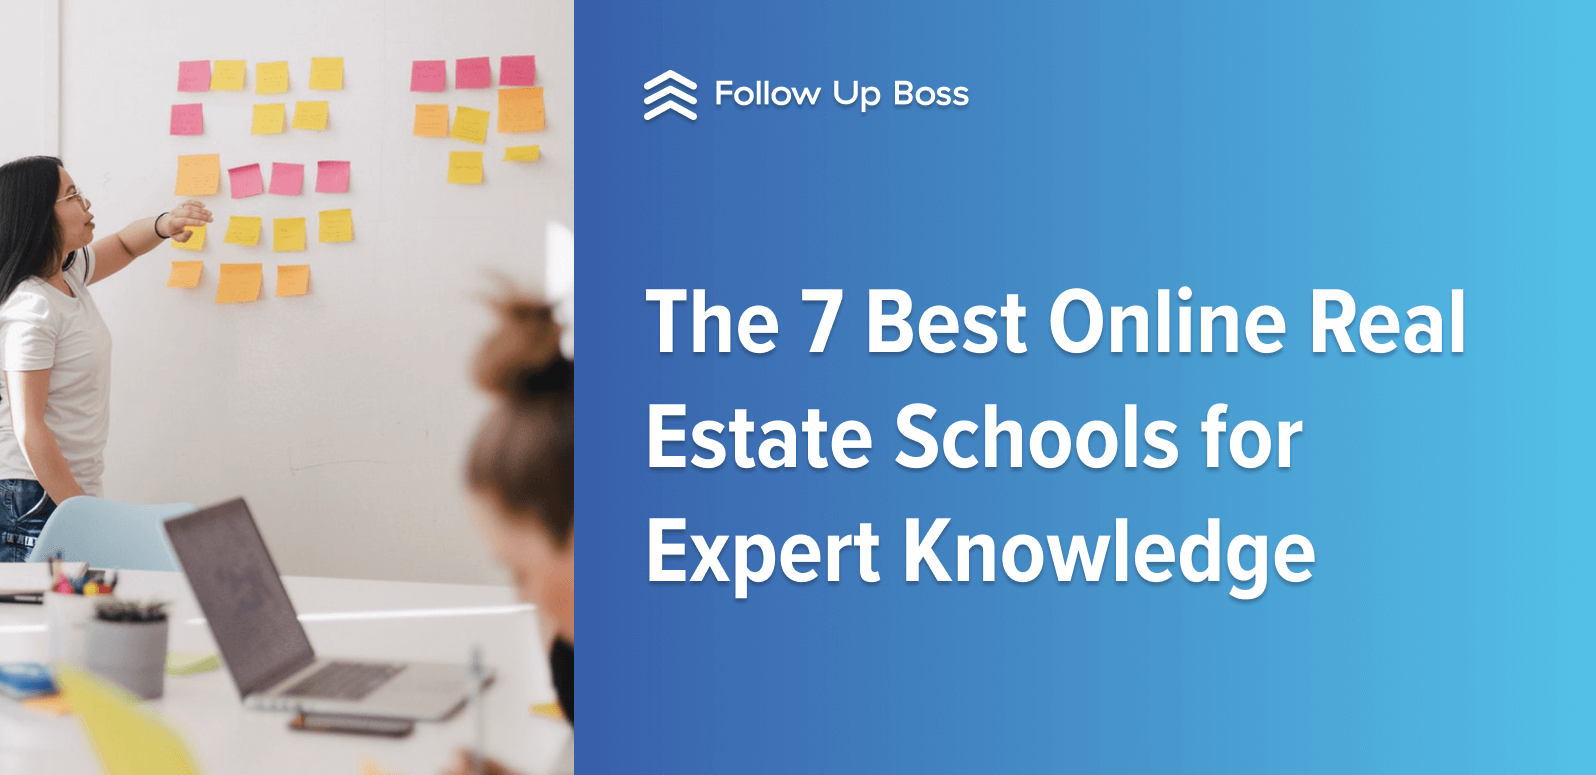 The 7 Best Online Real Estate Schools for Expert Knowledge